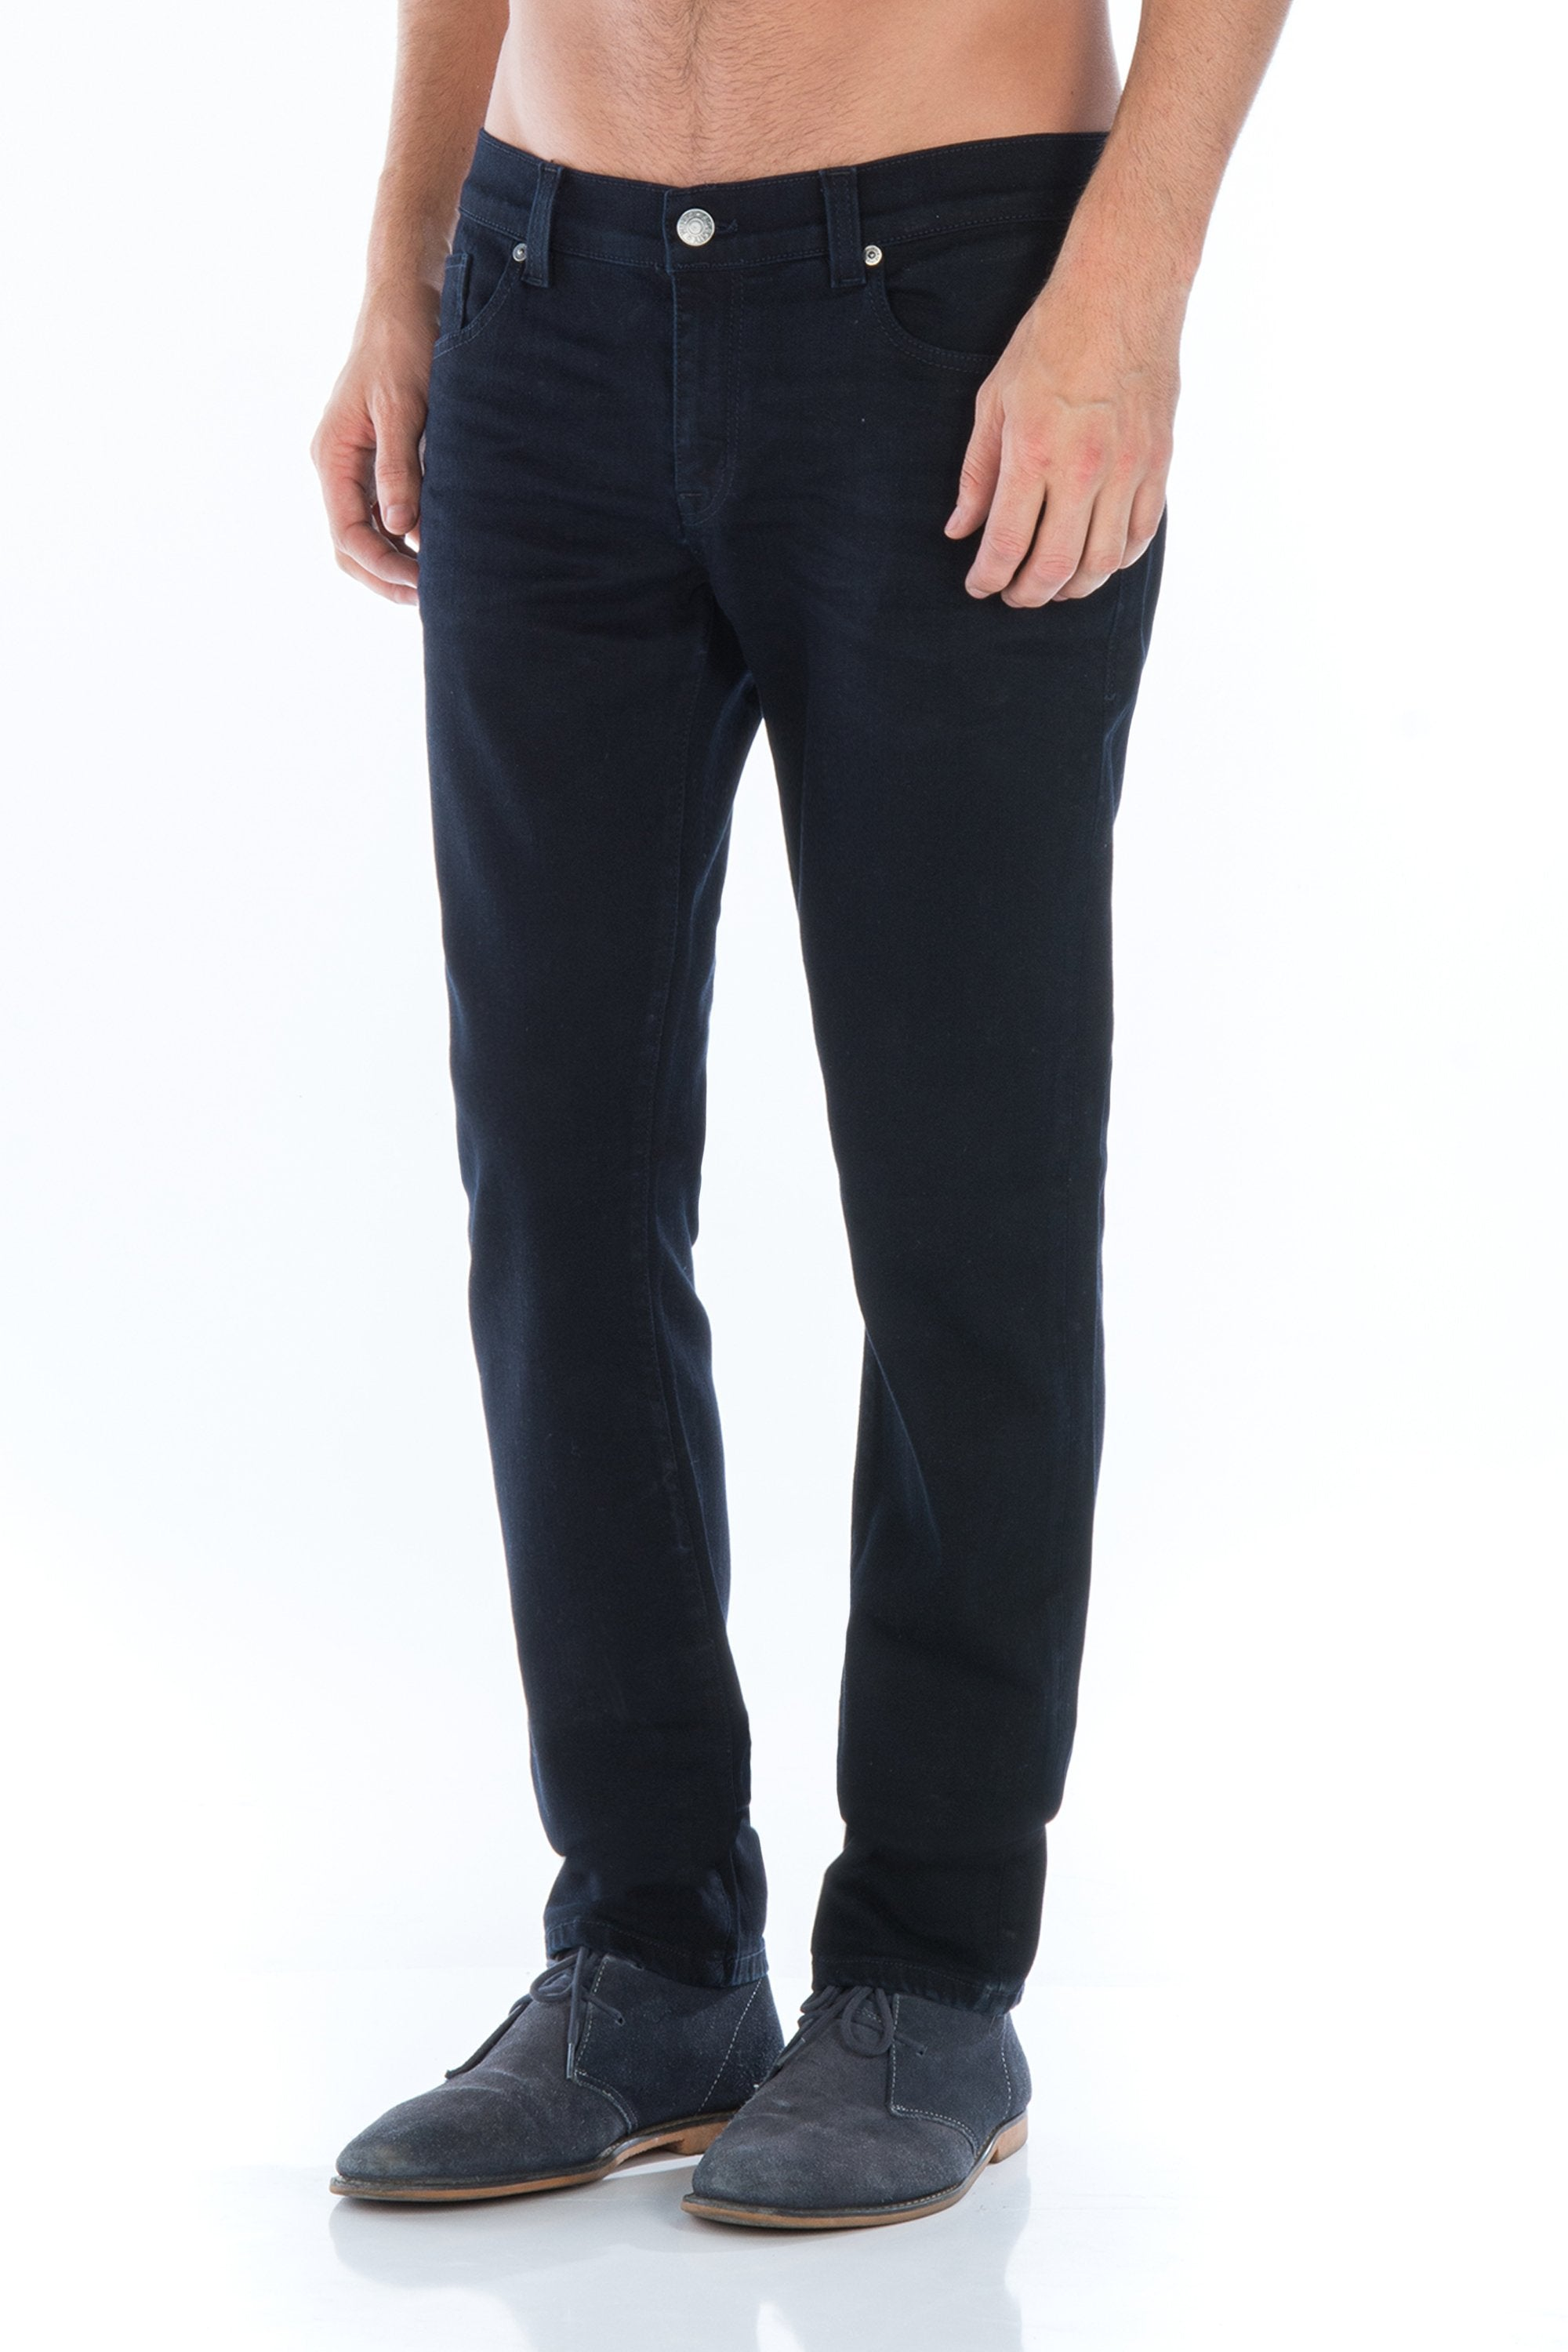 Fidelity Jeans Torino Everblue